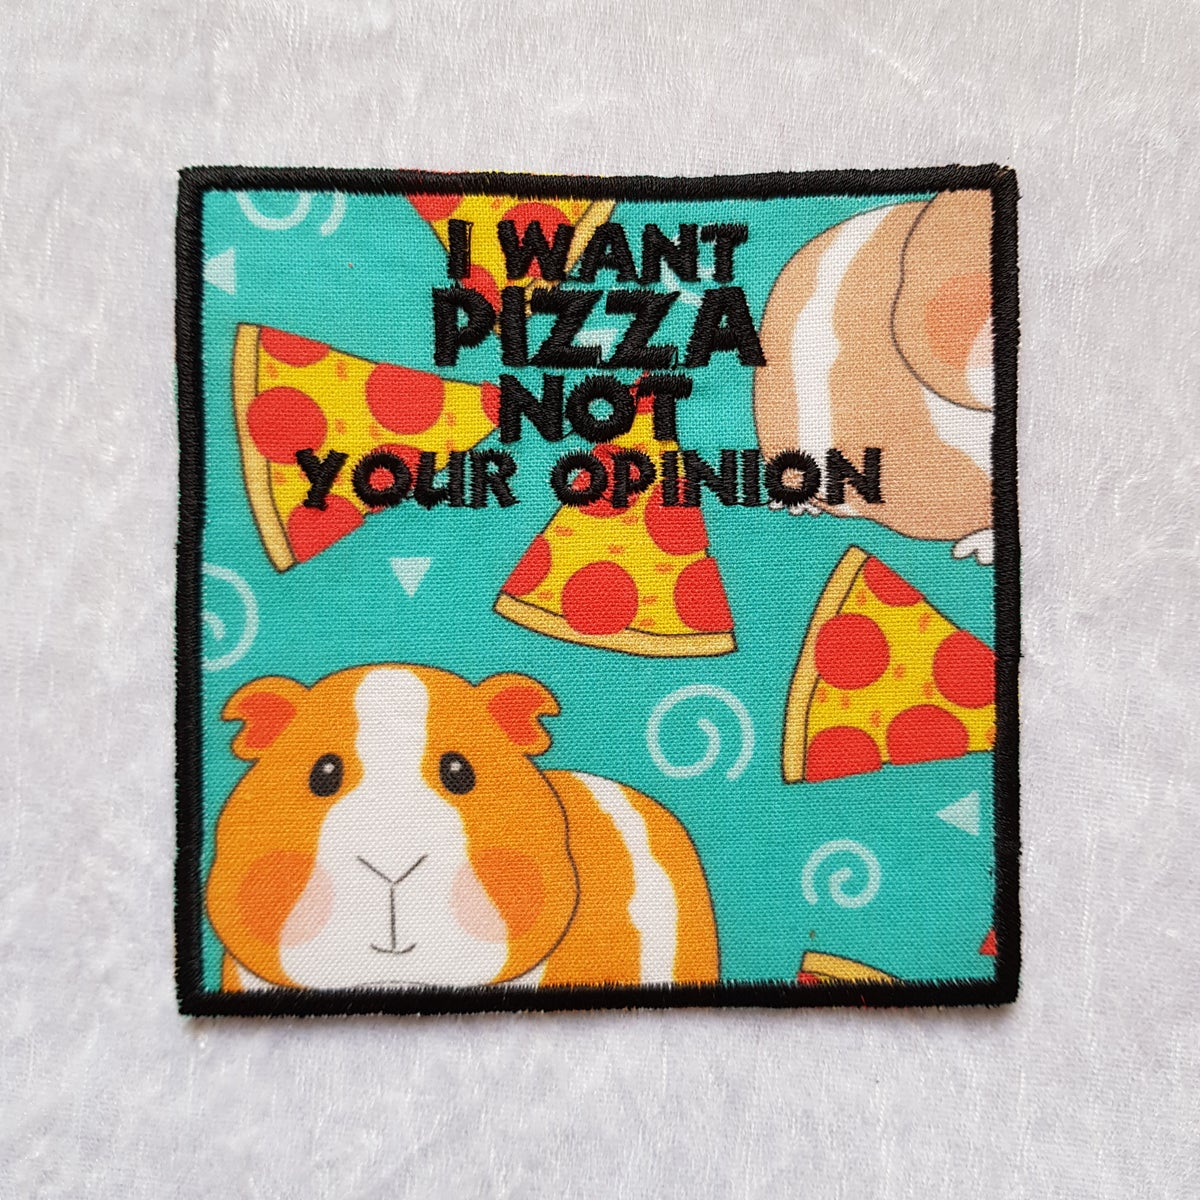 🐹 Patchs Don't want your opinion PIZZAS 🐹